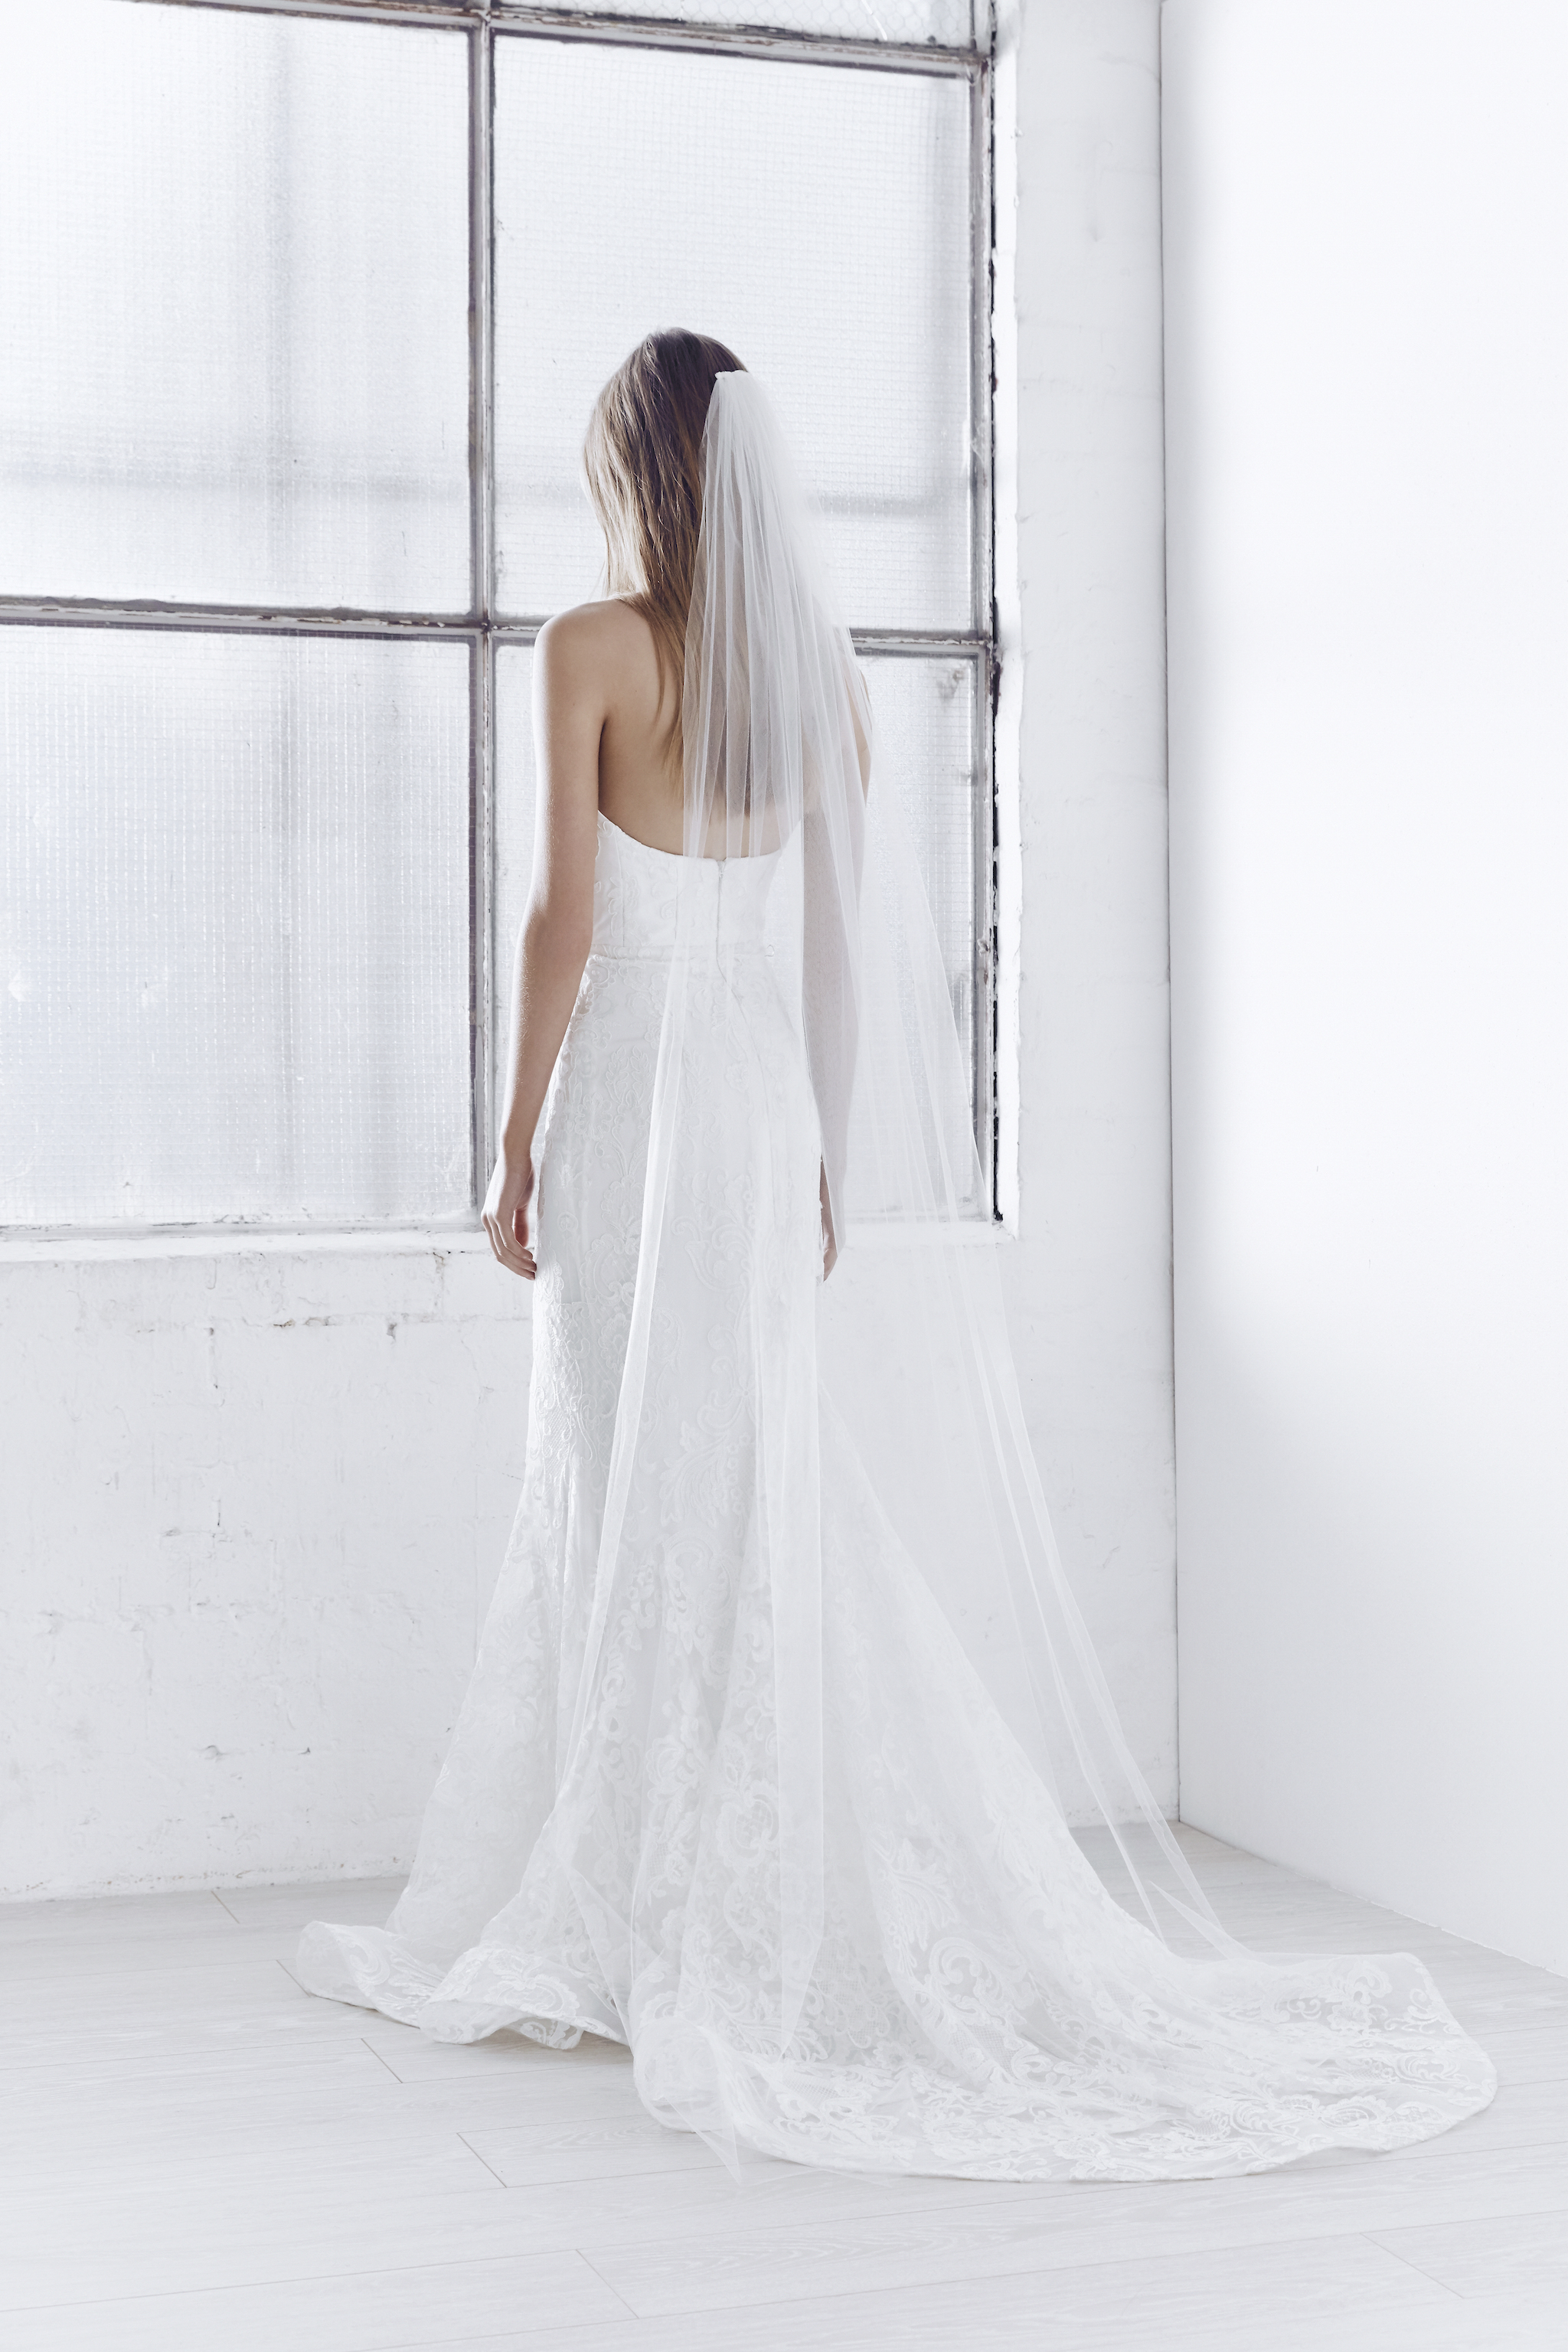 The Sophia Dress styled with the Ashantha plain tulle veil (Chapel Length without Blusher)